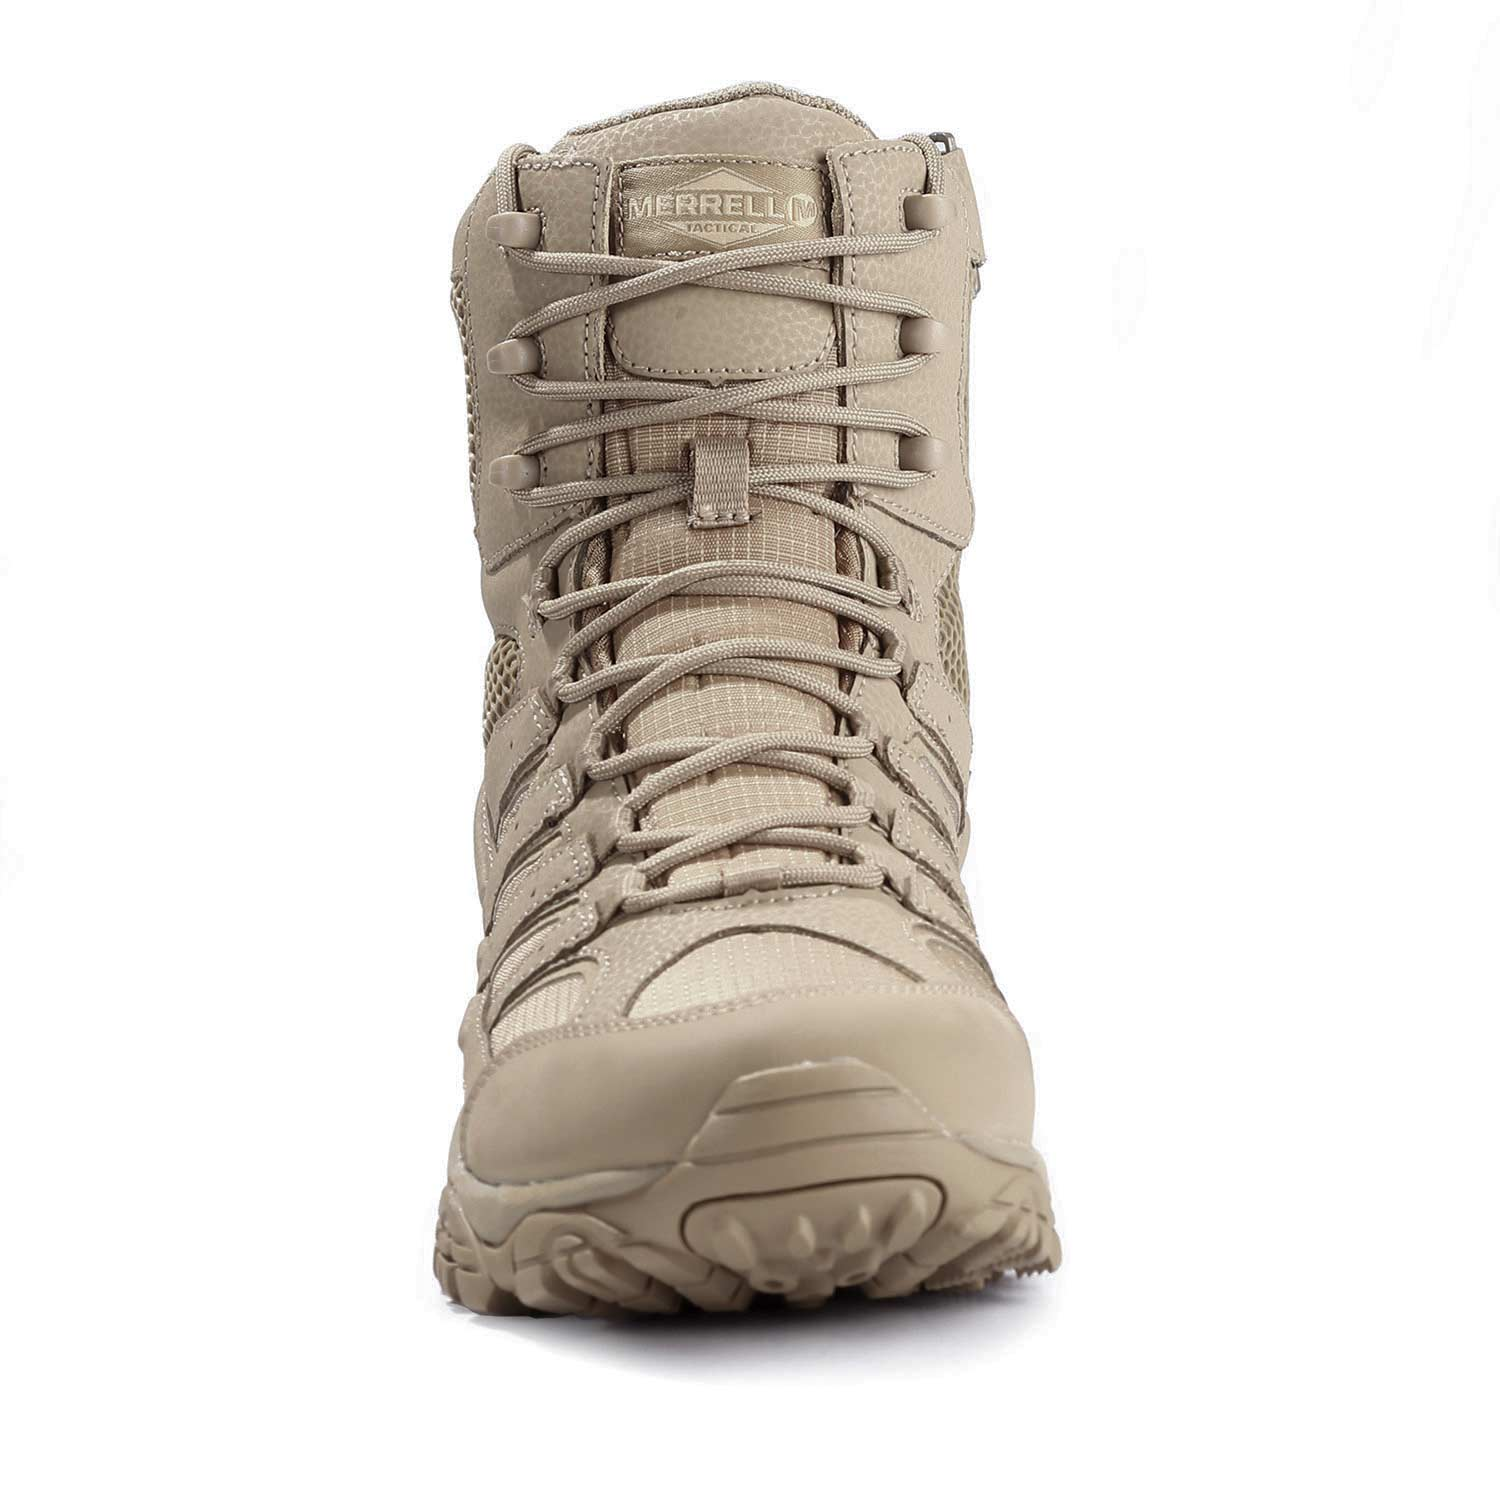 bfb673b1e1b Merrell Moab 2 Tactical Waterproof Side-Zip 8